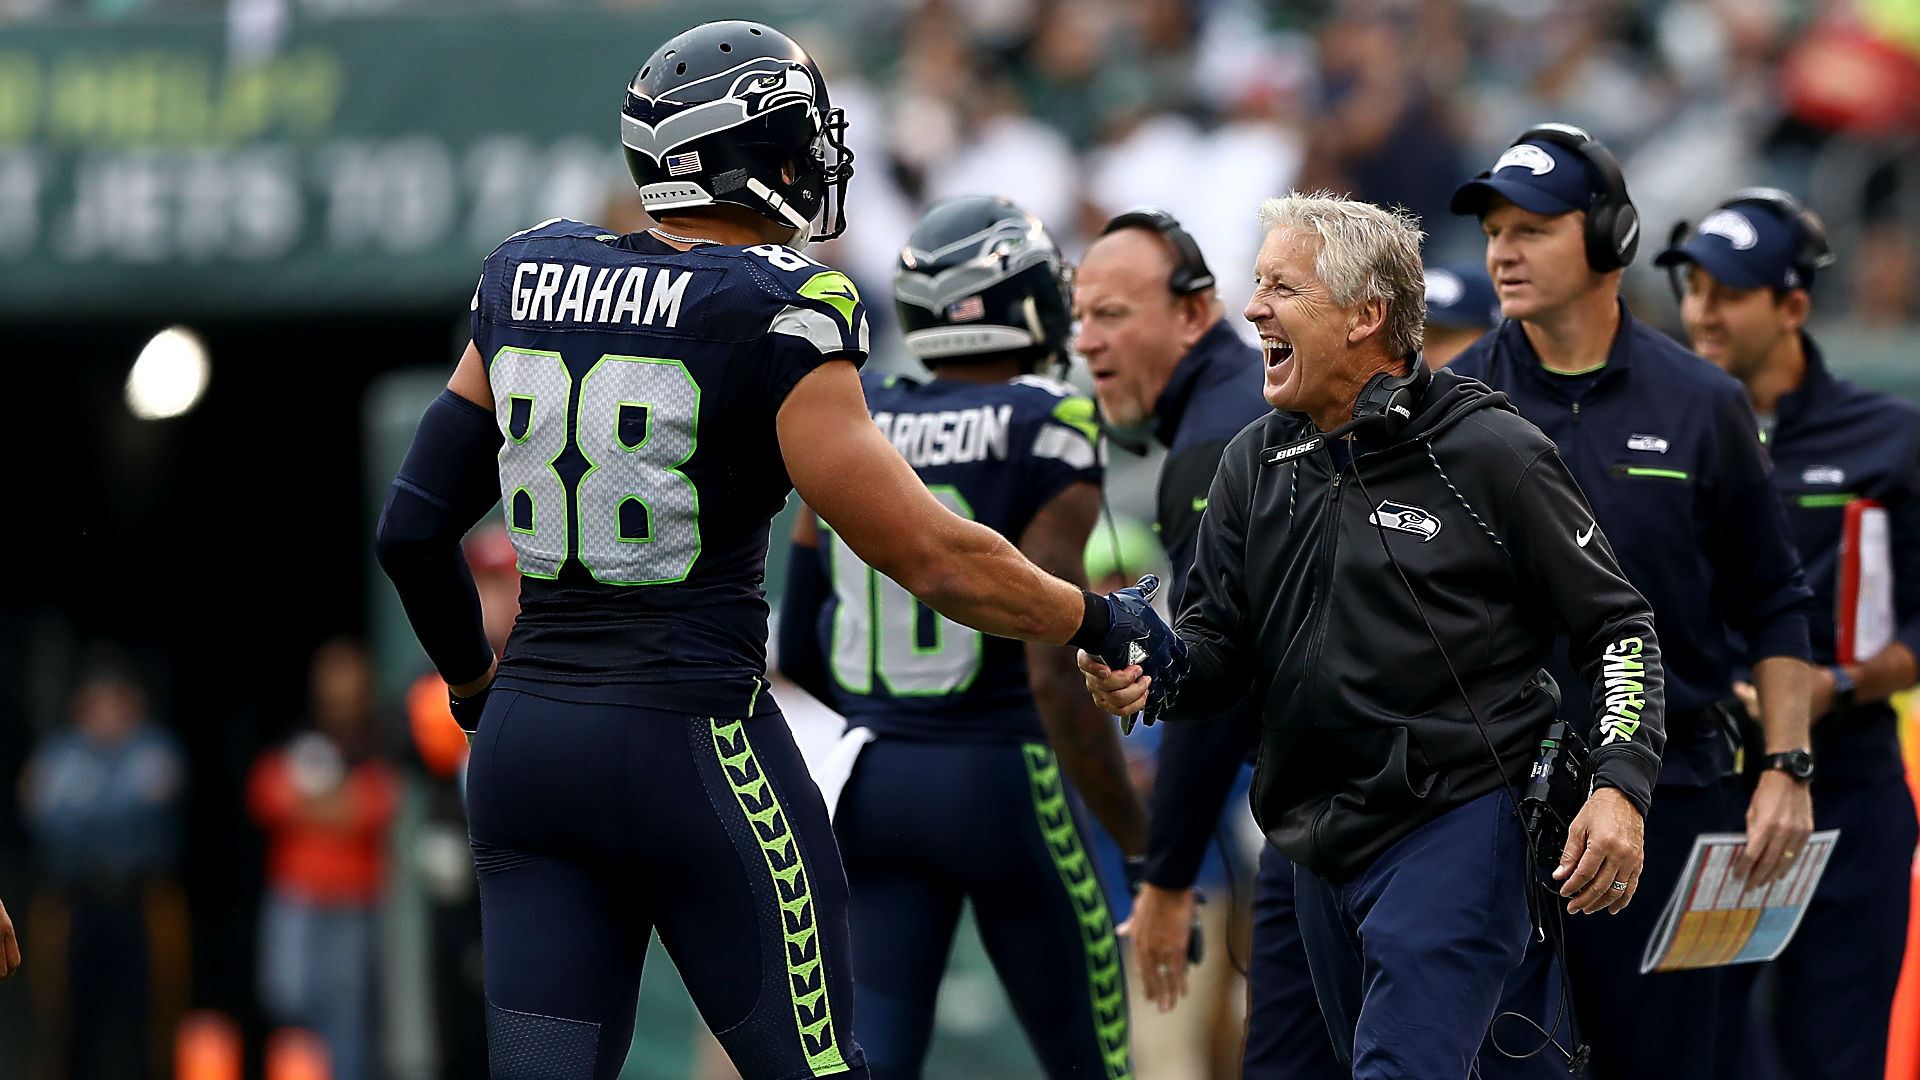 Jimmy-graham-carroll-seahawks-getty-ftrjpg_1nqb30ik72rlf16hphqoc5ylmy